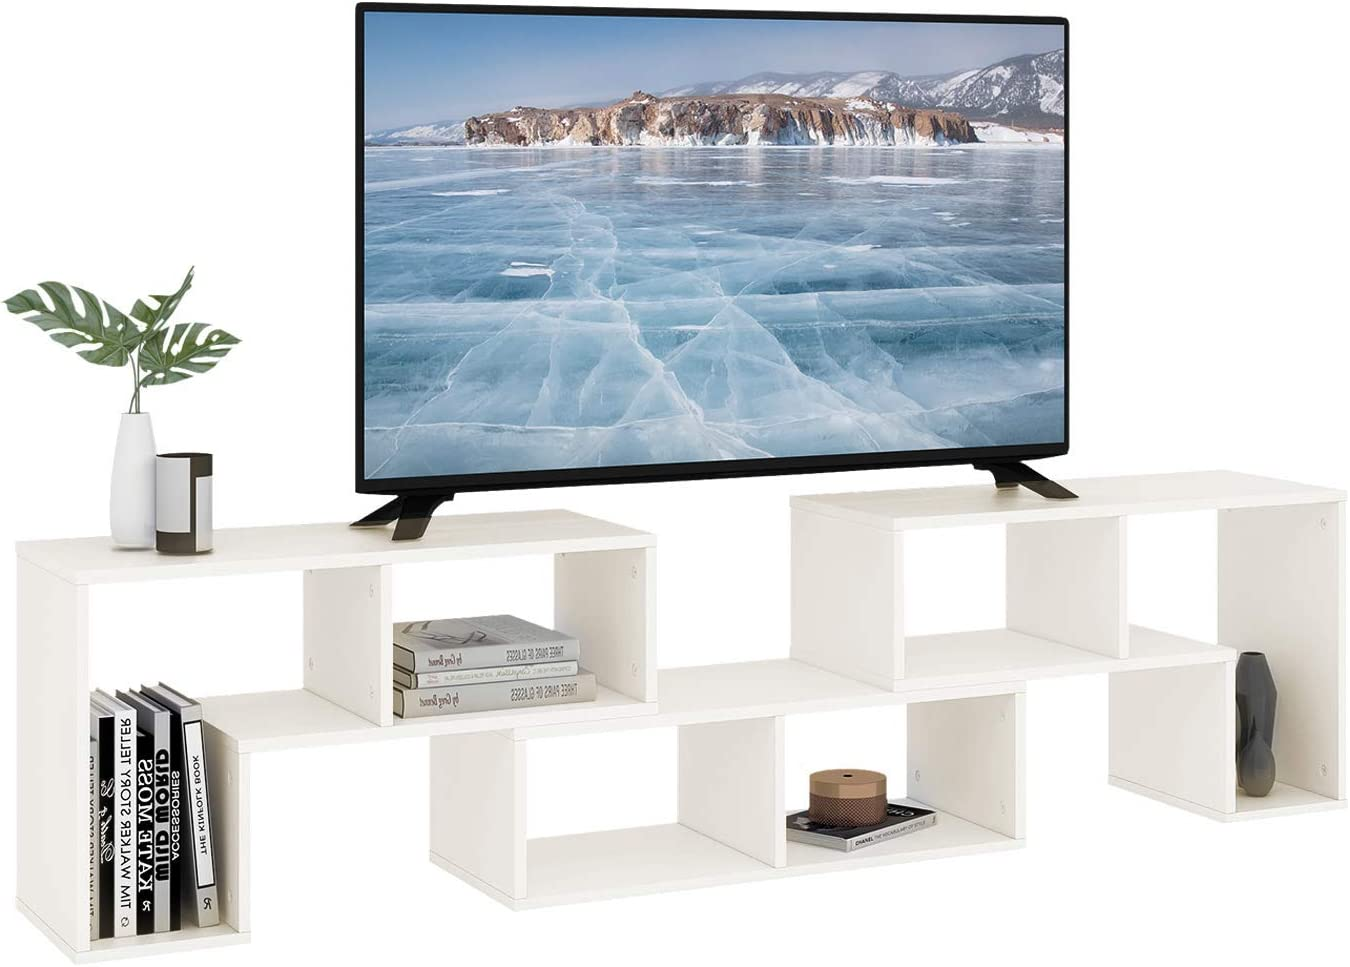 Amazon Com Devaise 3 Pieces Tv Console Stand Tv Table Modern Entertainment Center Media Stand Storage Bookcase Shelf For Living Room White Furniture Decor